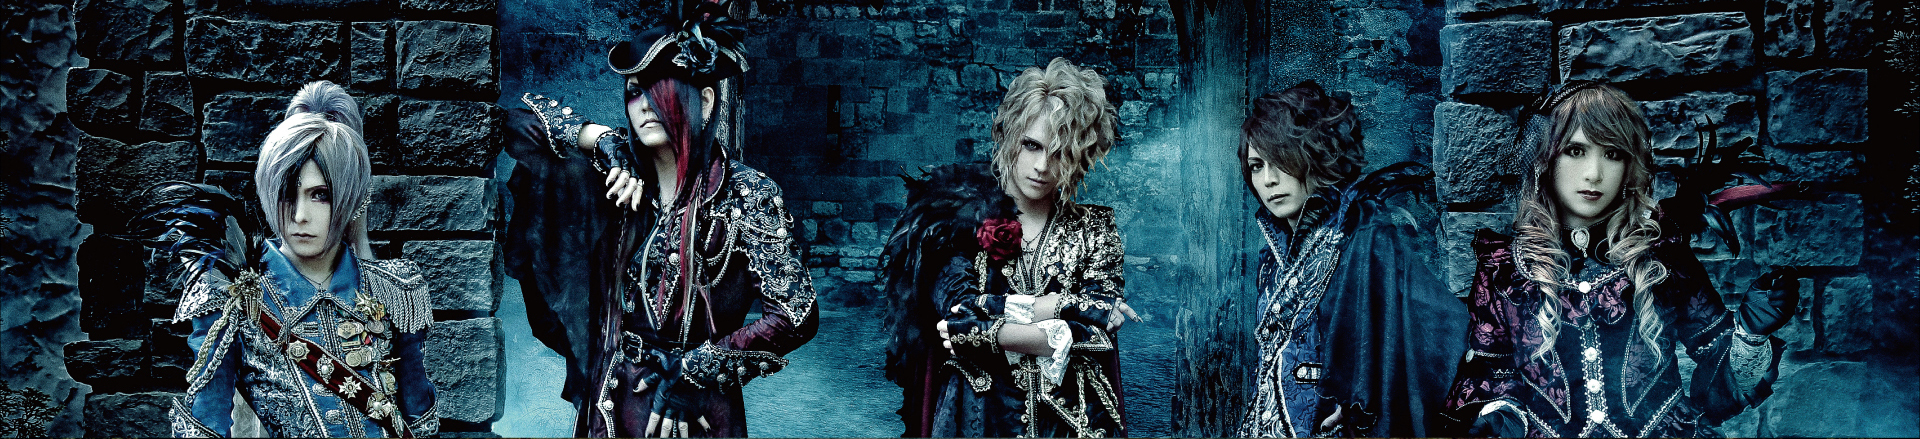 Versailles Makes a Comeback With an Announcement of a New Album